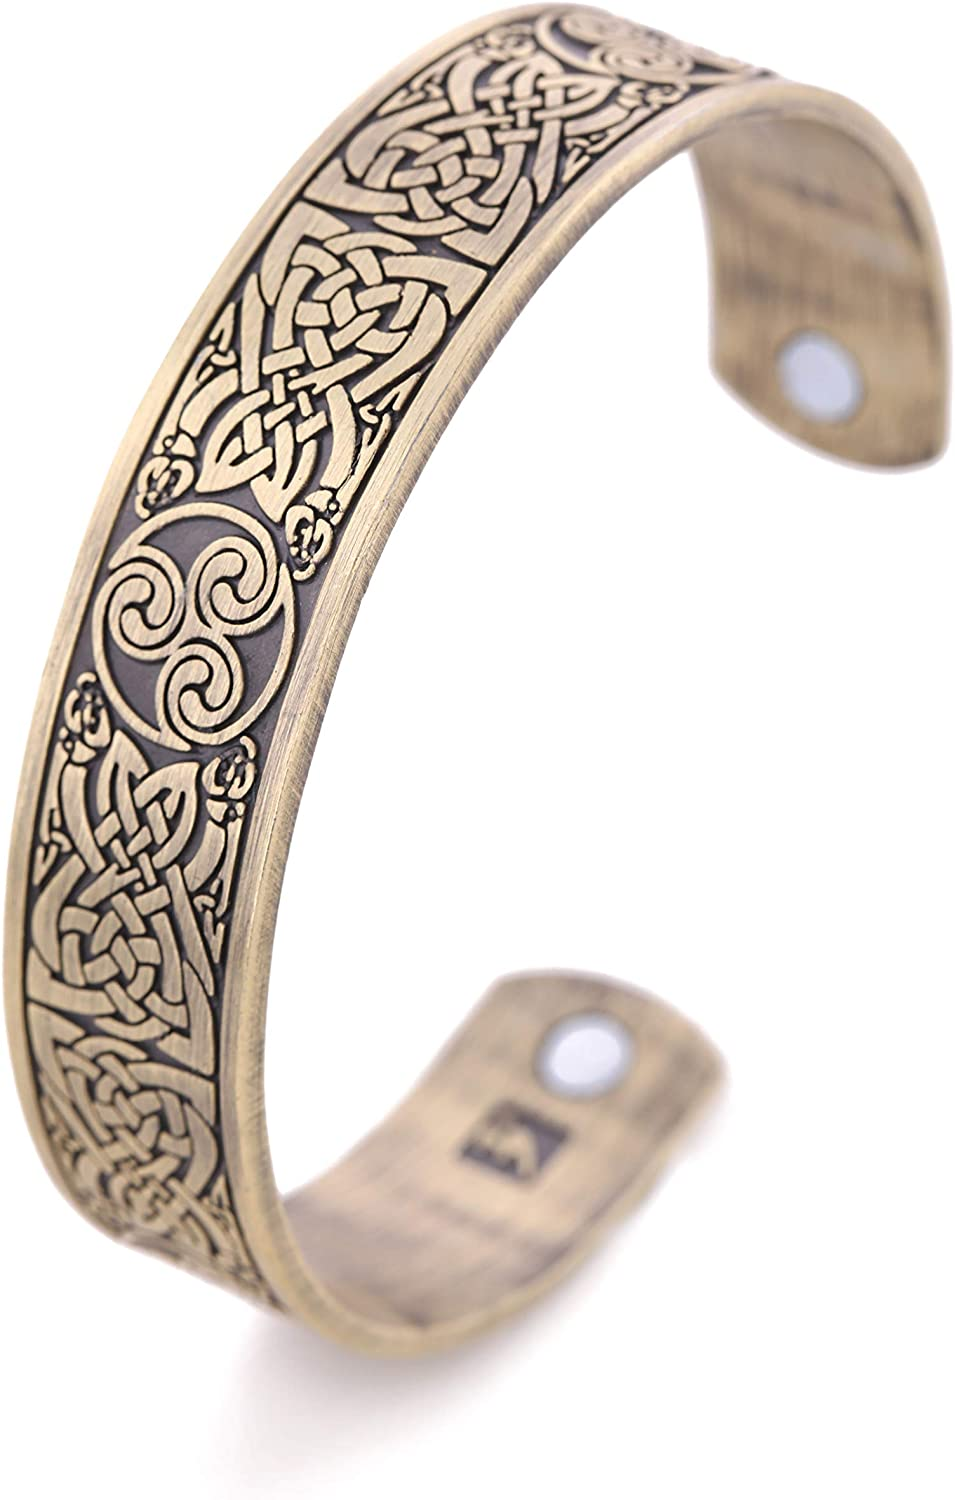 VASSAGO Vintage Amulet Nordic Viking Celtic Irish Knot Triskelion Triskele Magnetic Health Cuff Bracelet Men Women